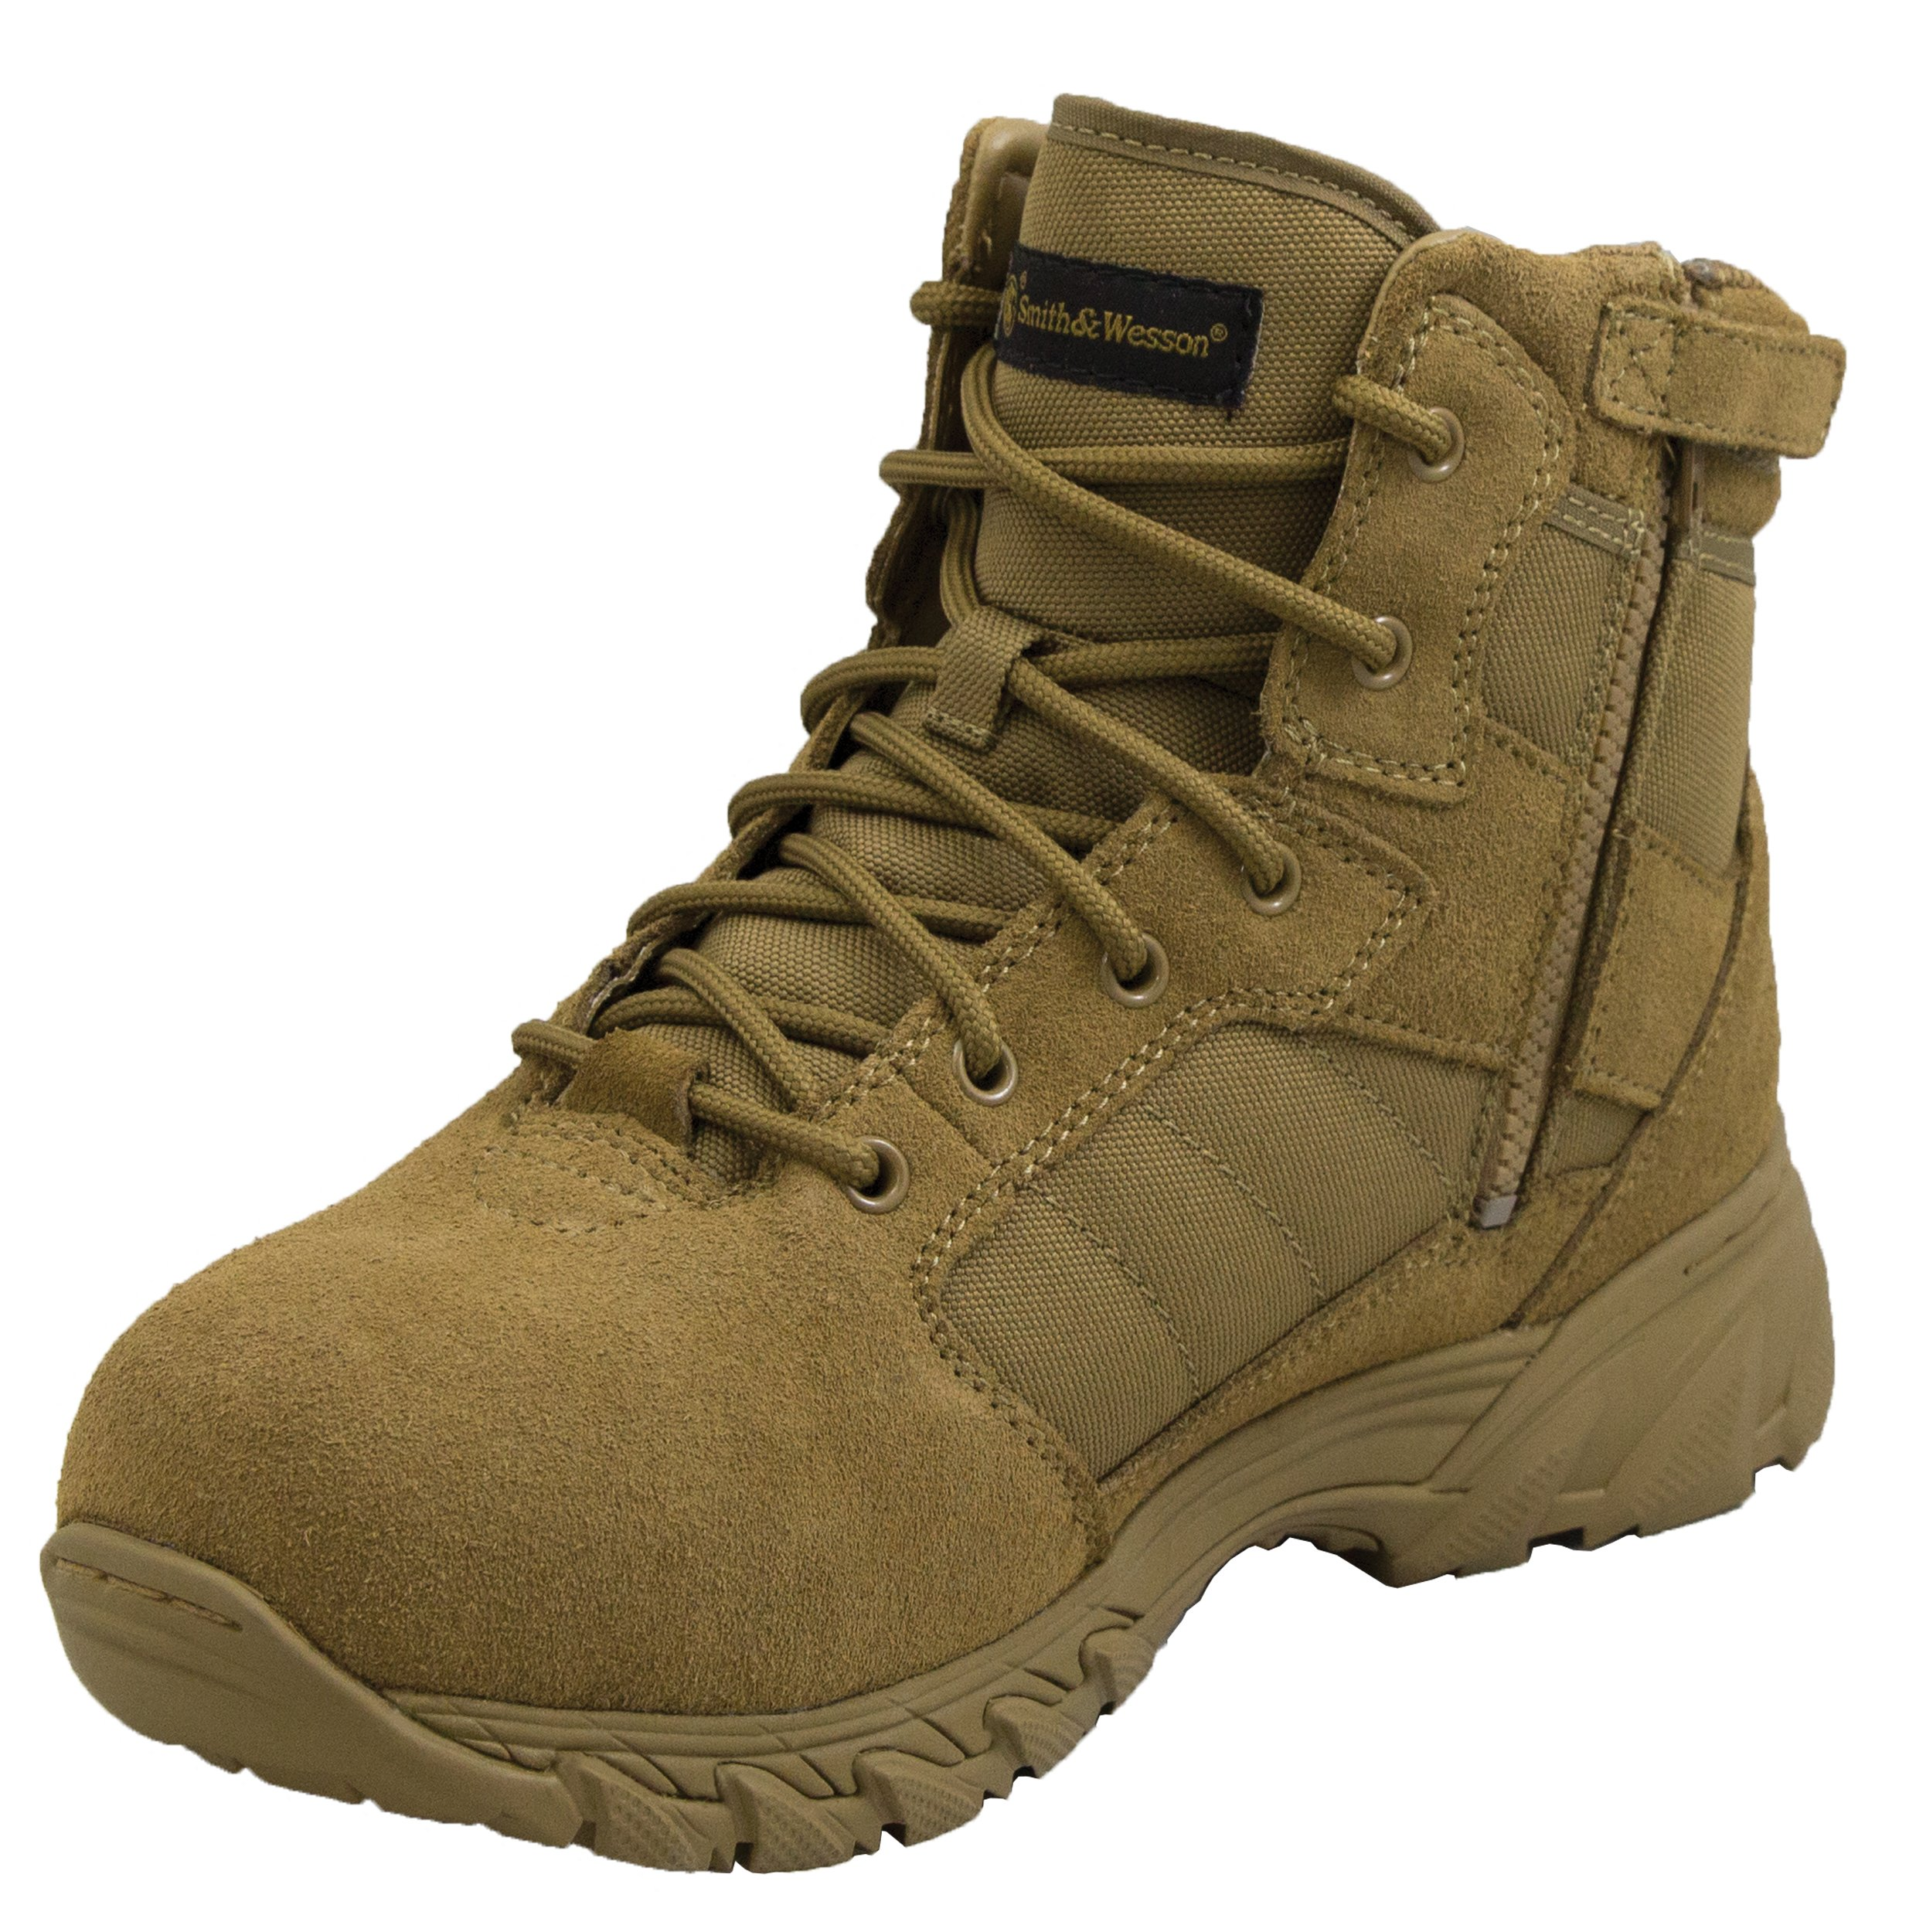 Smith & Wesson Men's Breach 2.0 Side Zip Tactical Boots, Coyote, 8.5 by Smith & Wesson